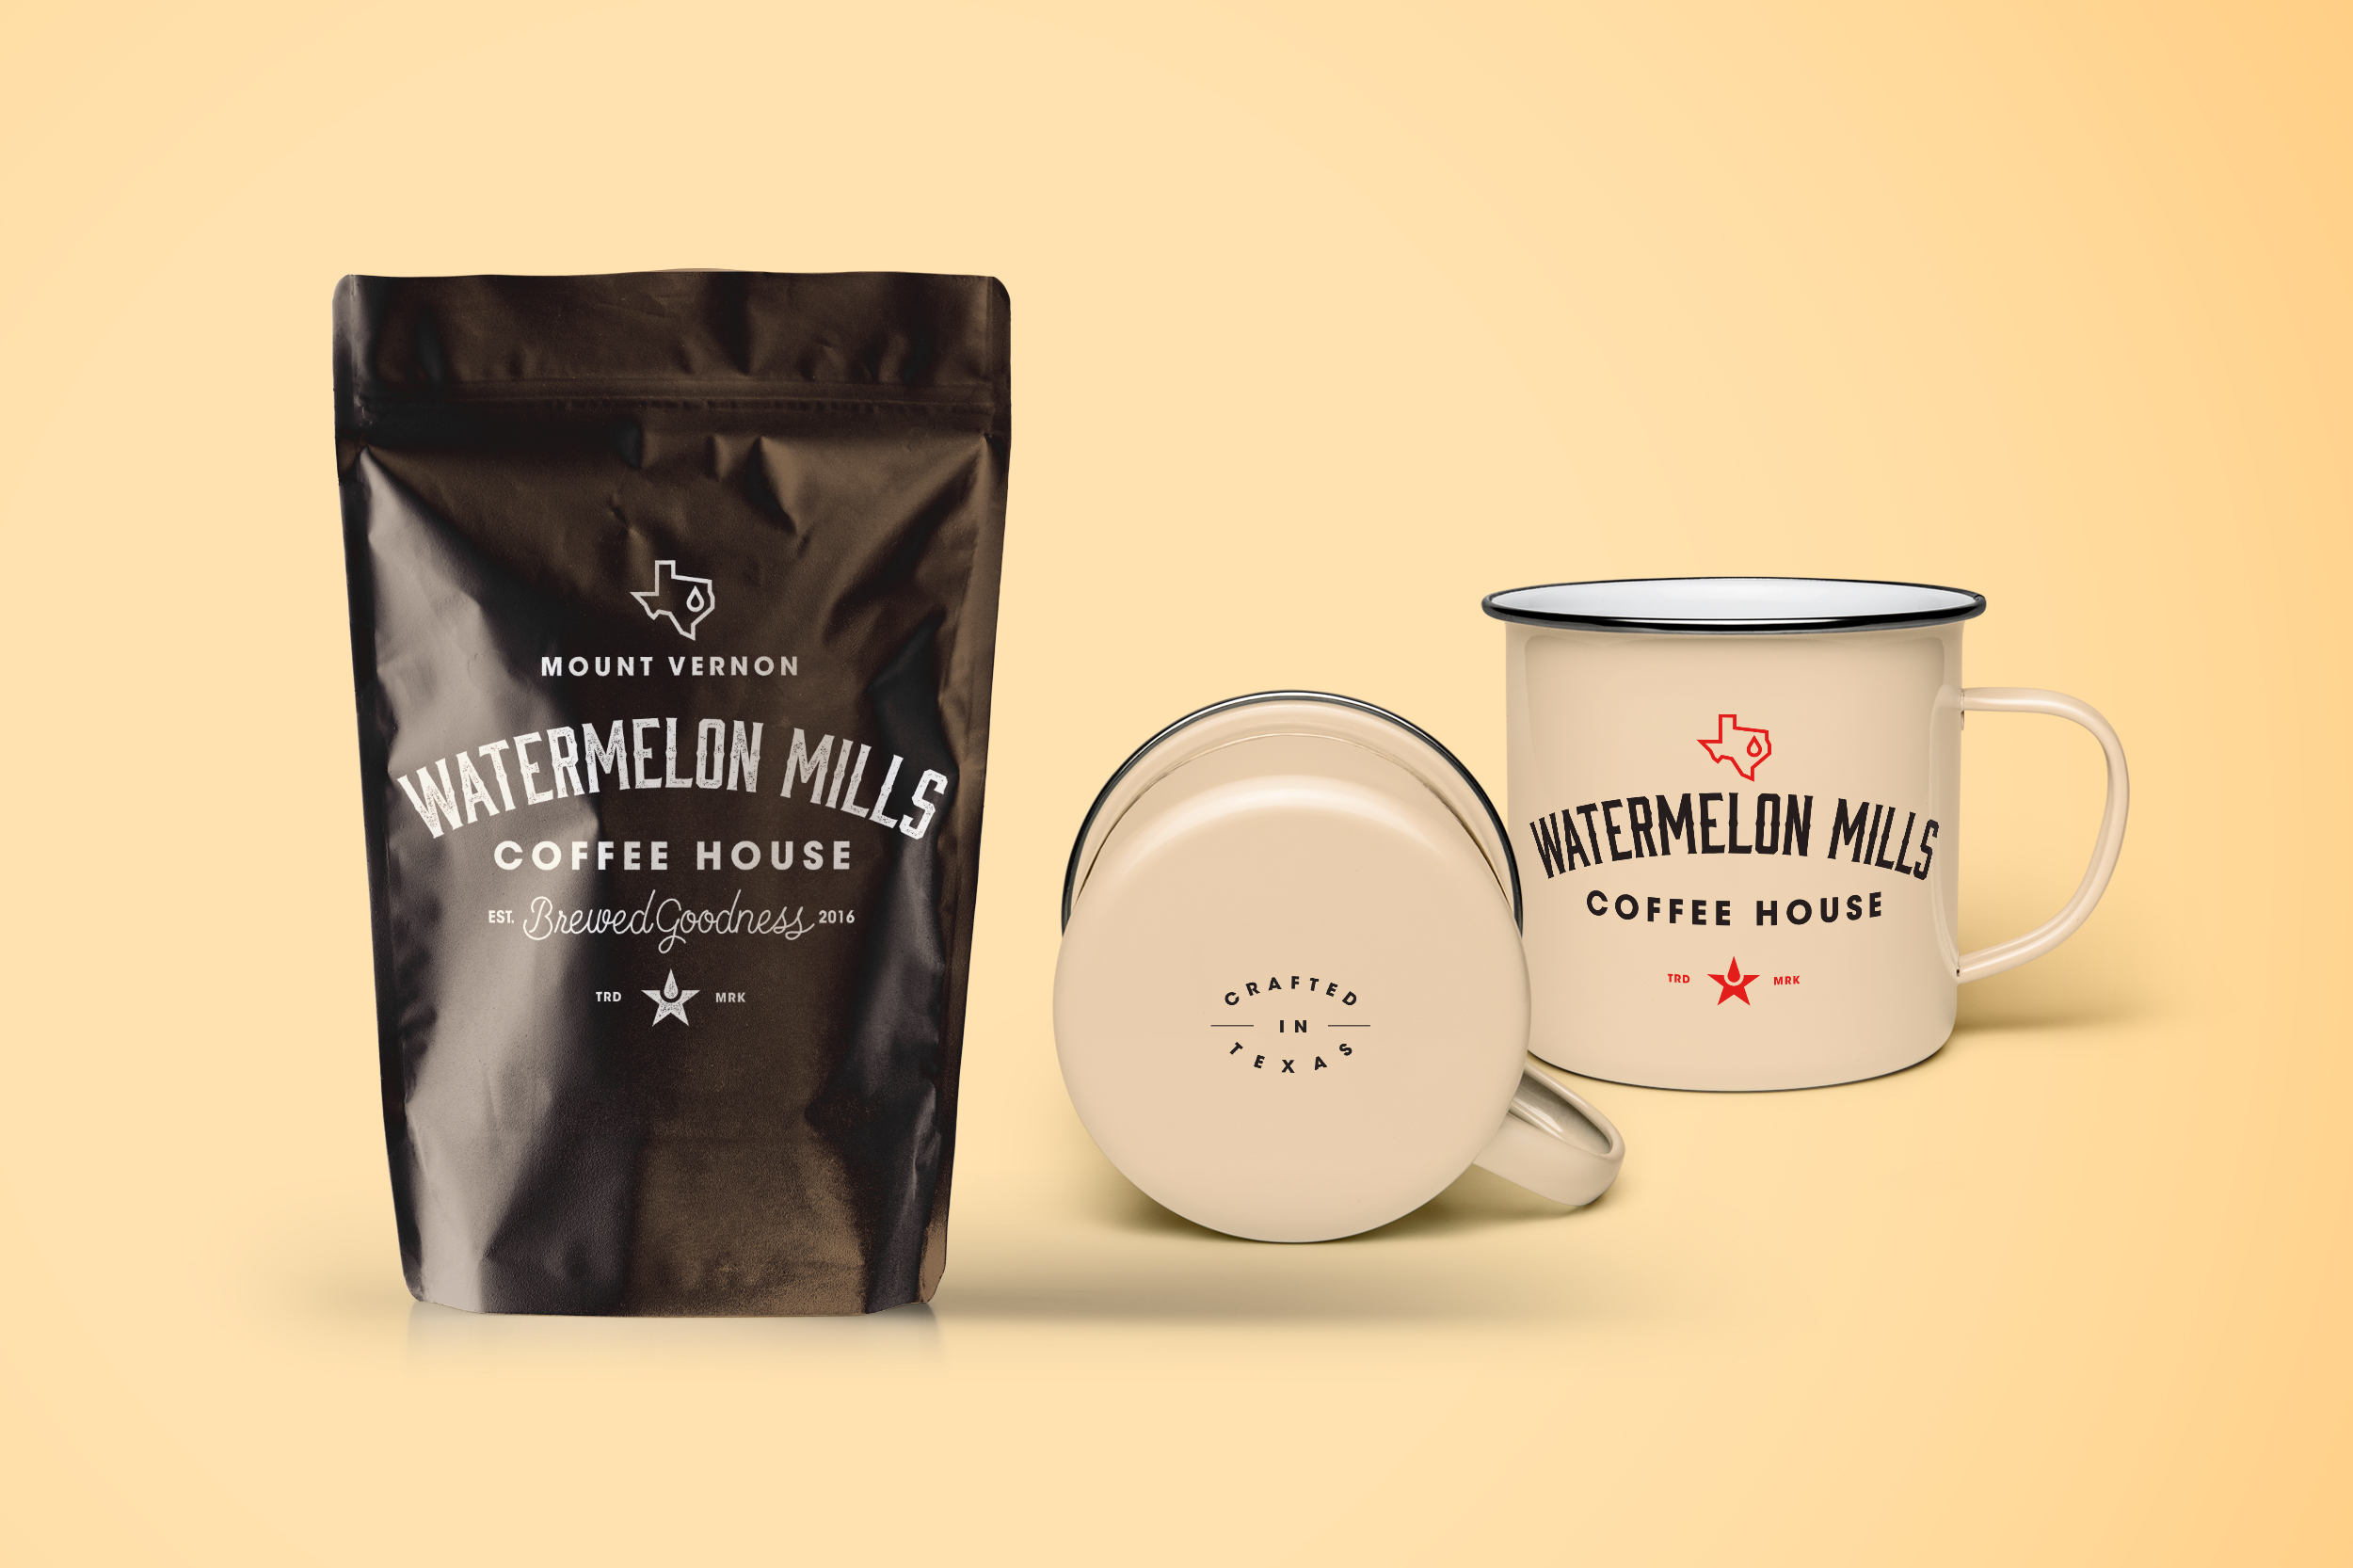 Watermelon Mills conceptual packaging